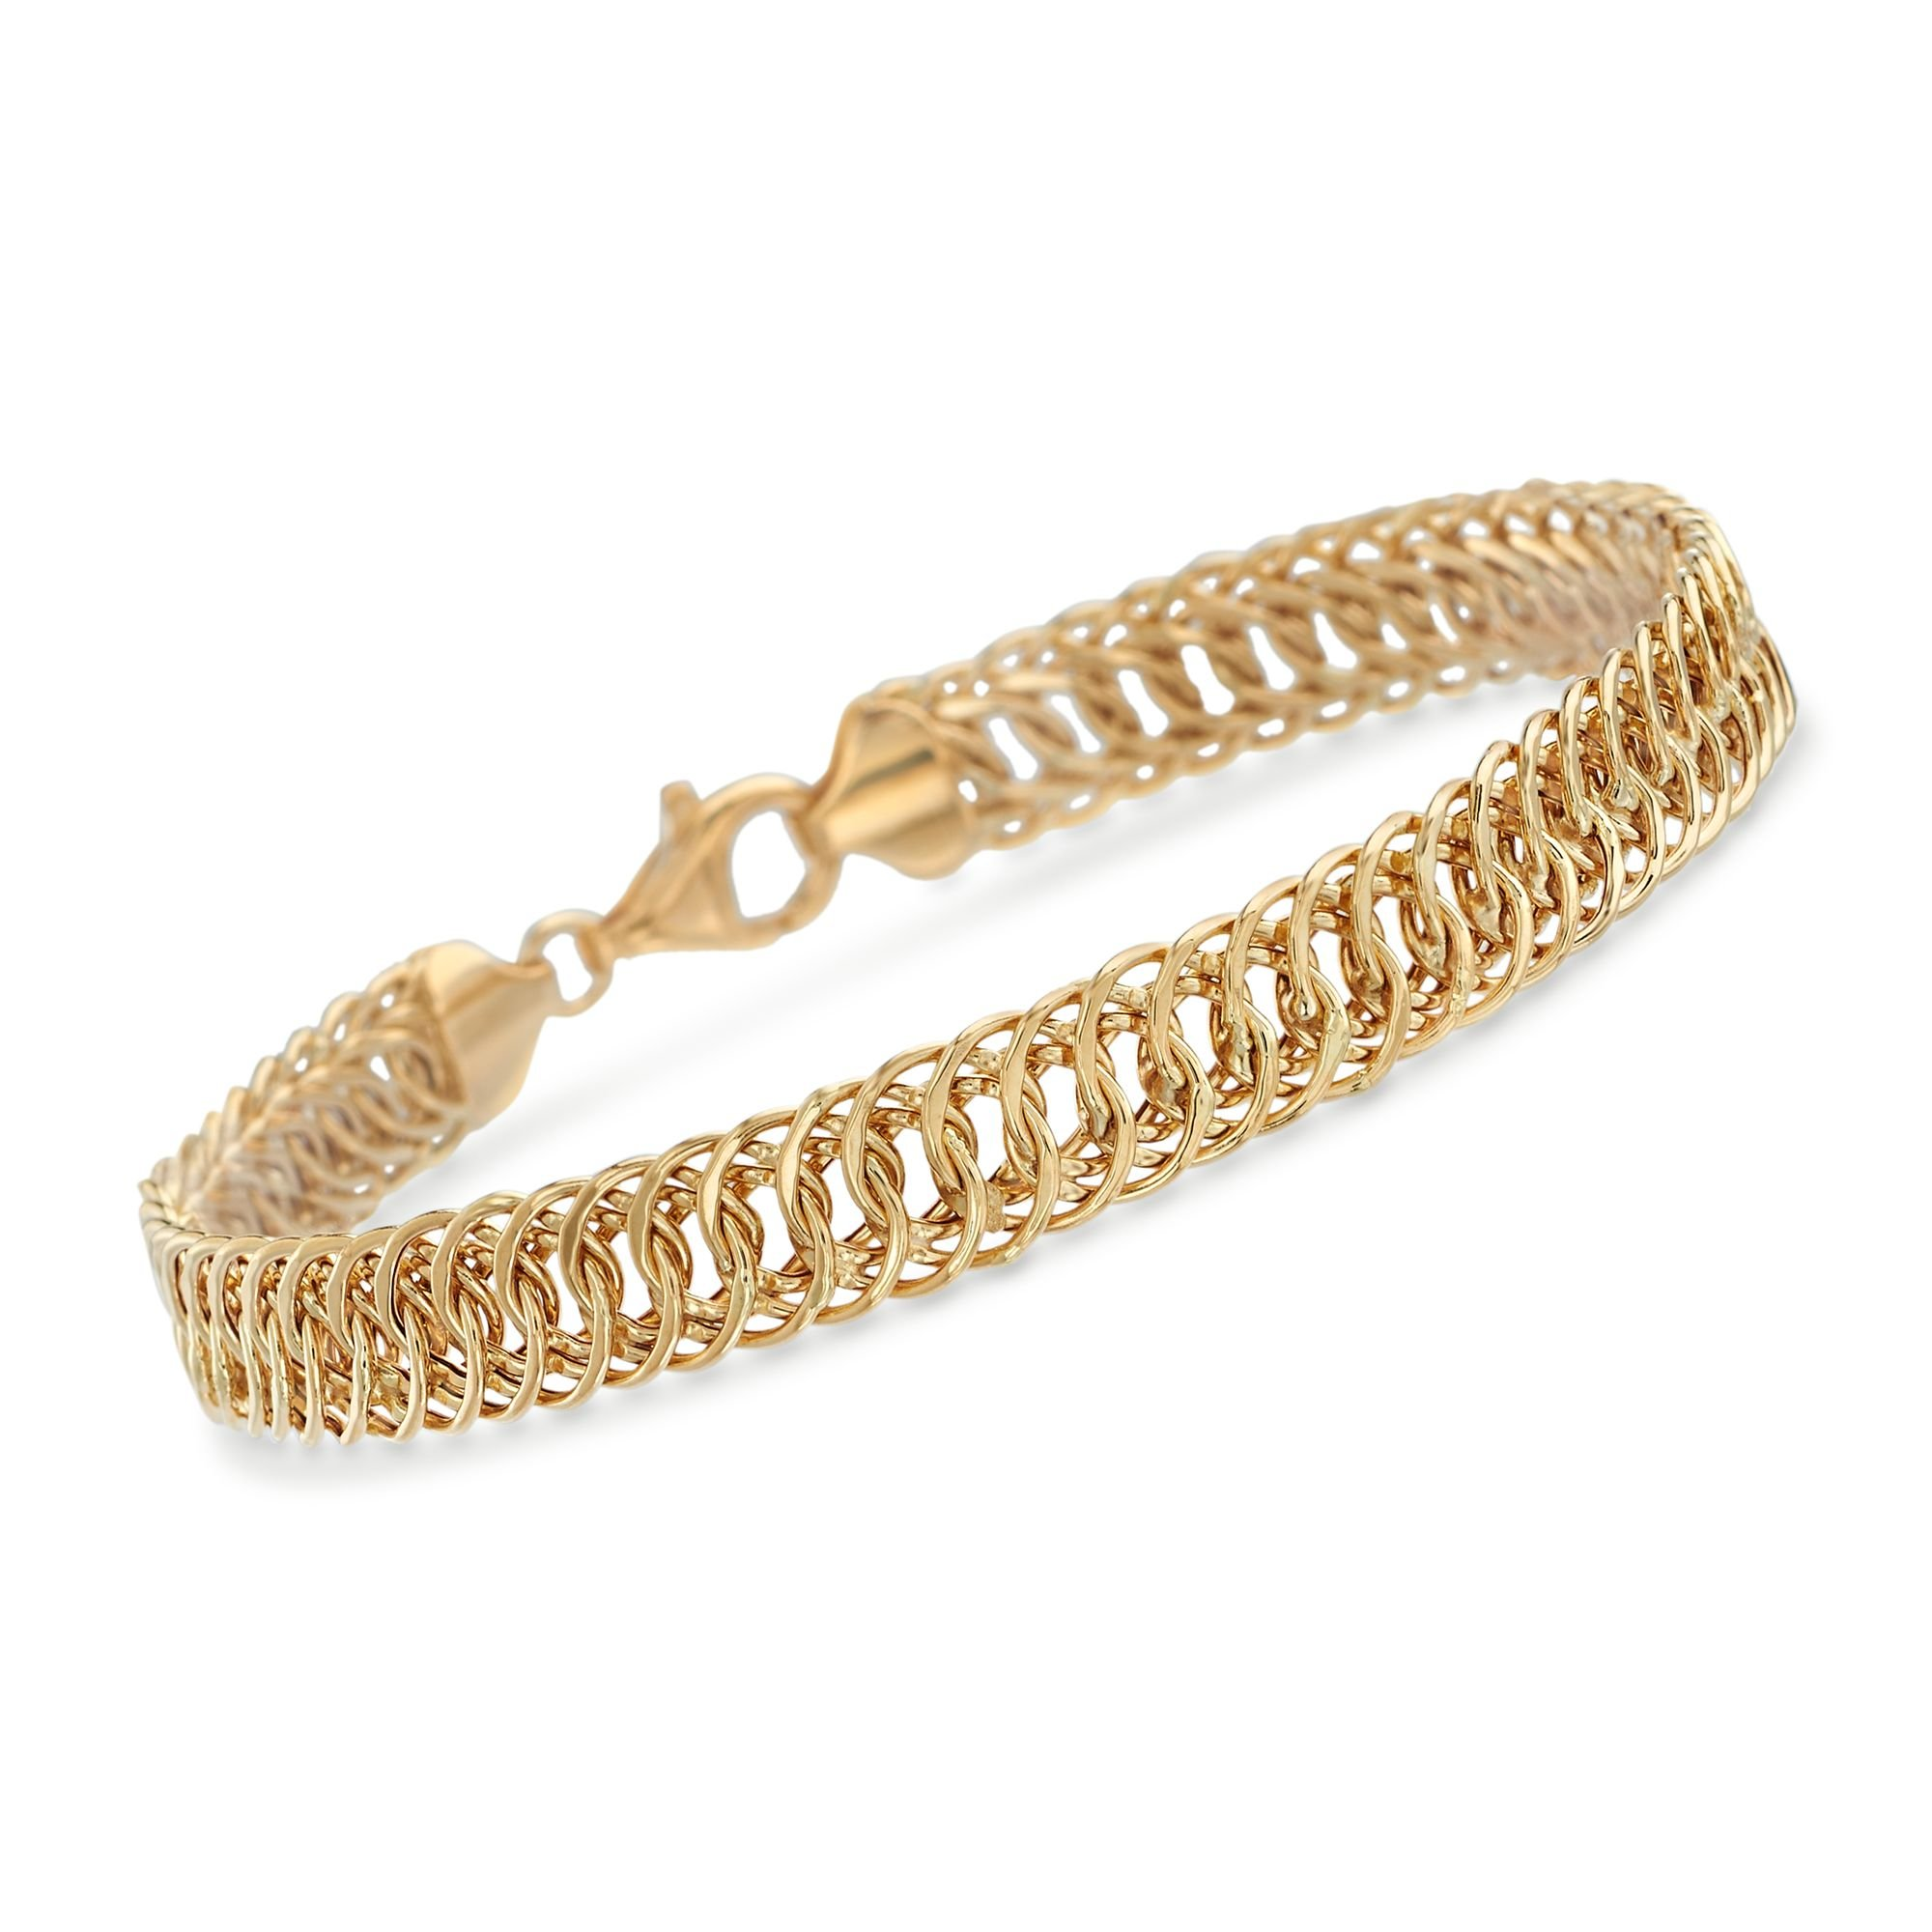 Ross-Simons 18kt Yellow Gold Interlocking Oval Link Bracelet